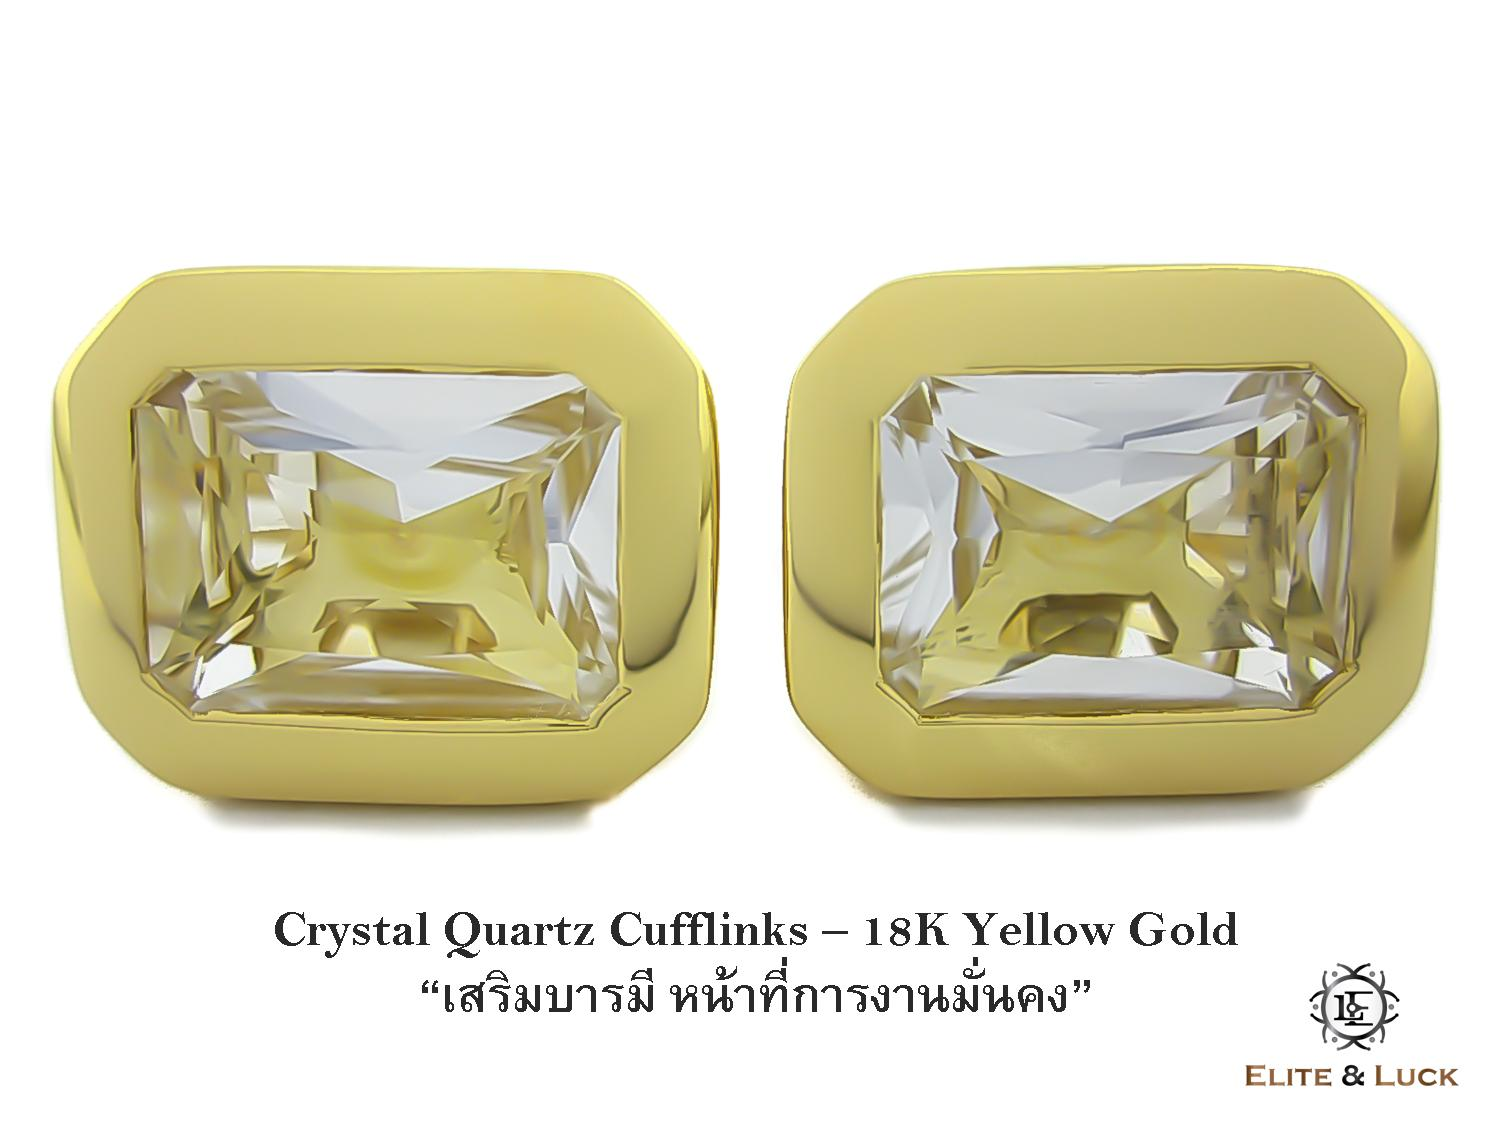 Crystal Quartz Sterling Silver Cufflinks สี 18K Yellow Gold รุ่น Classic